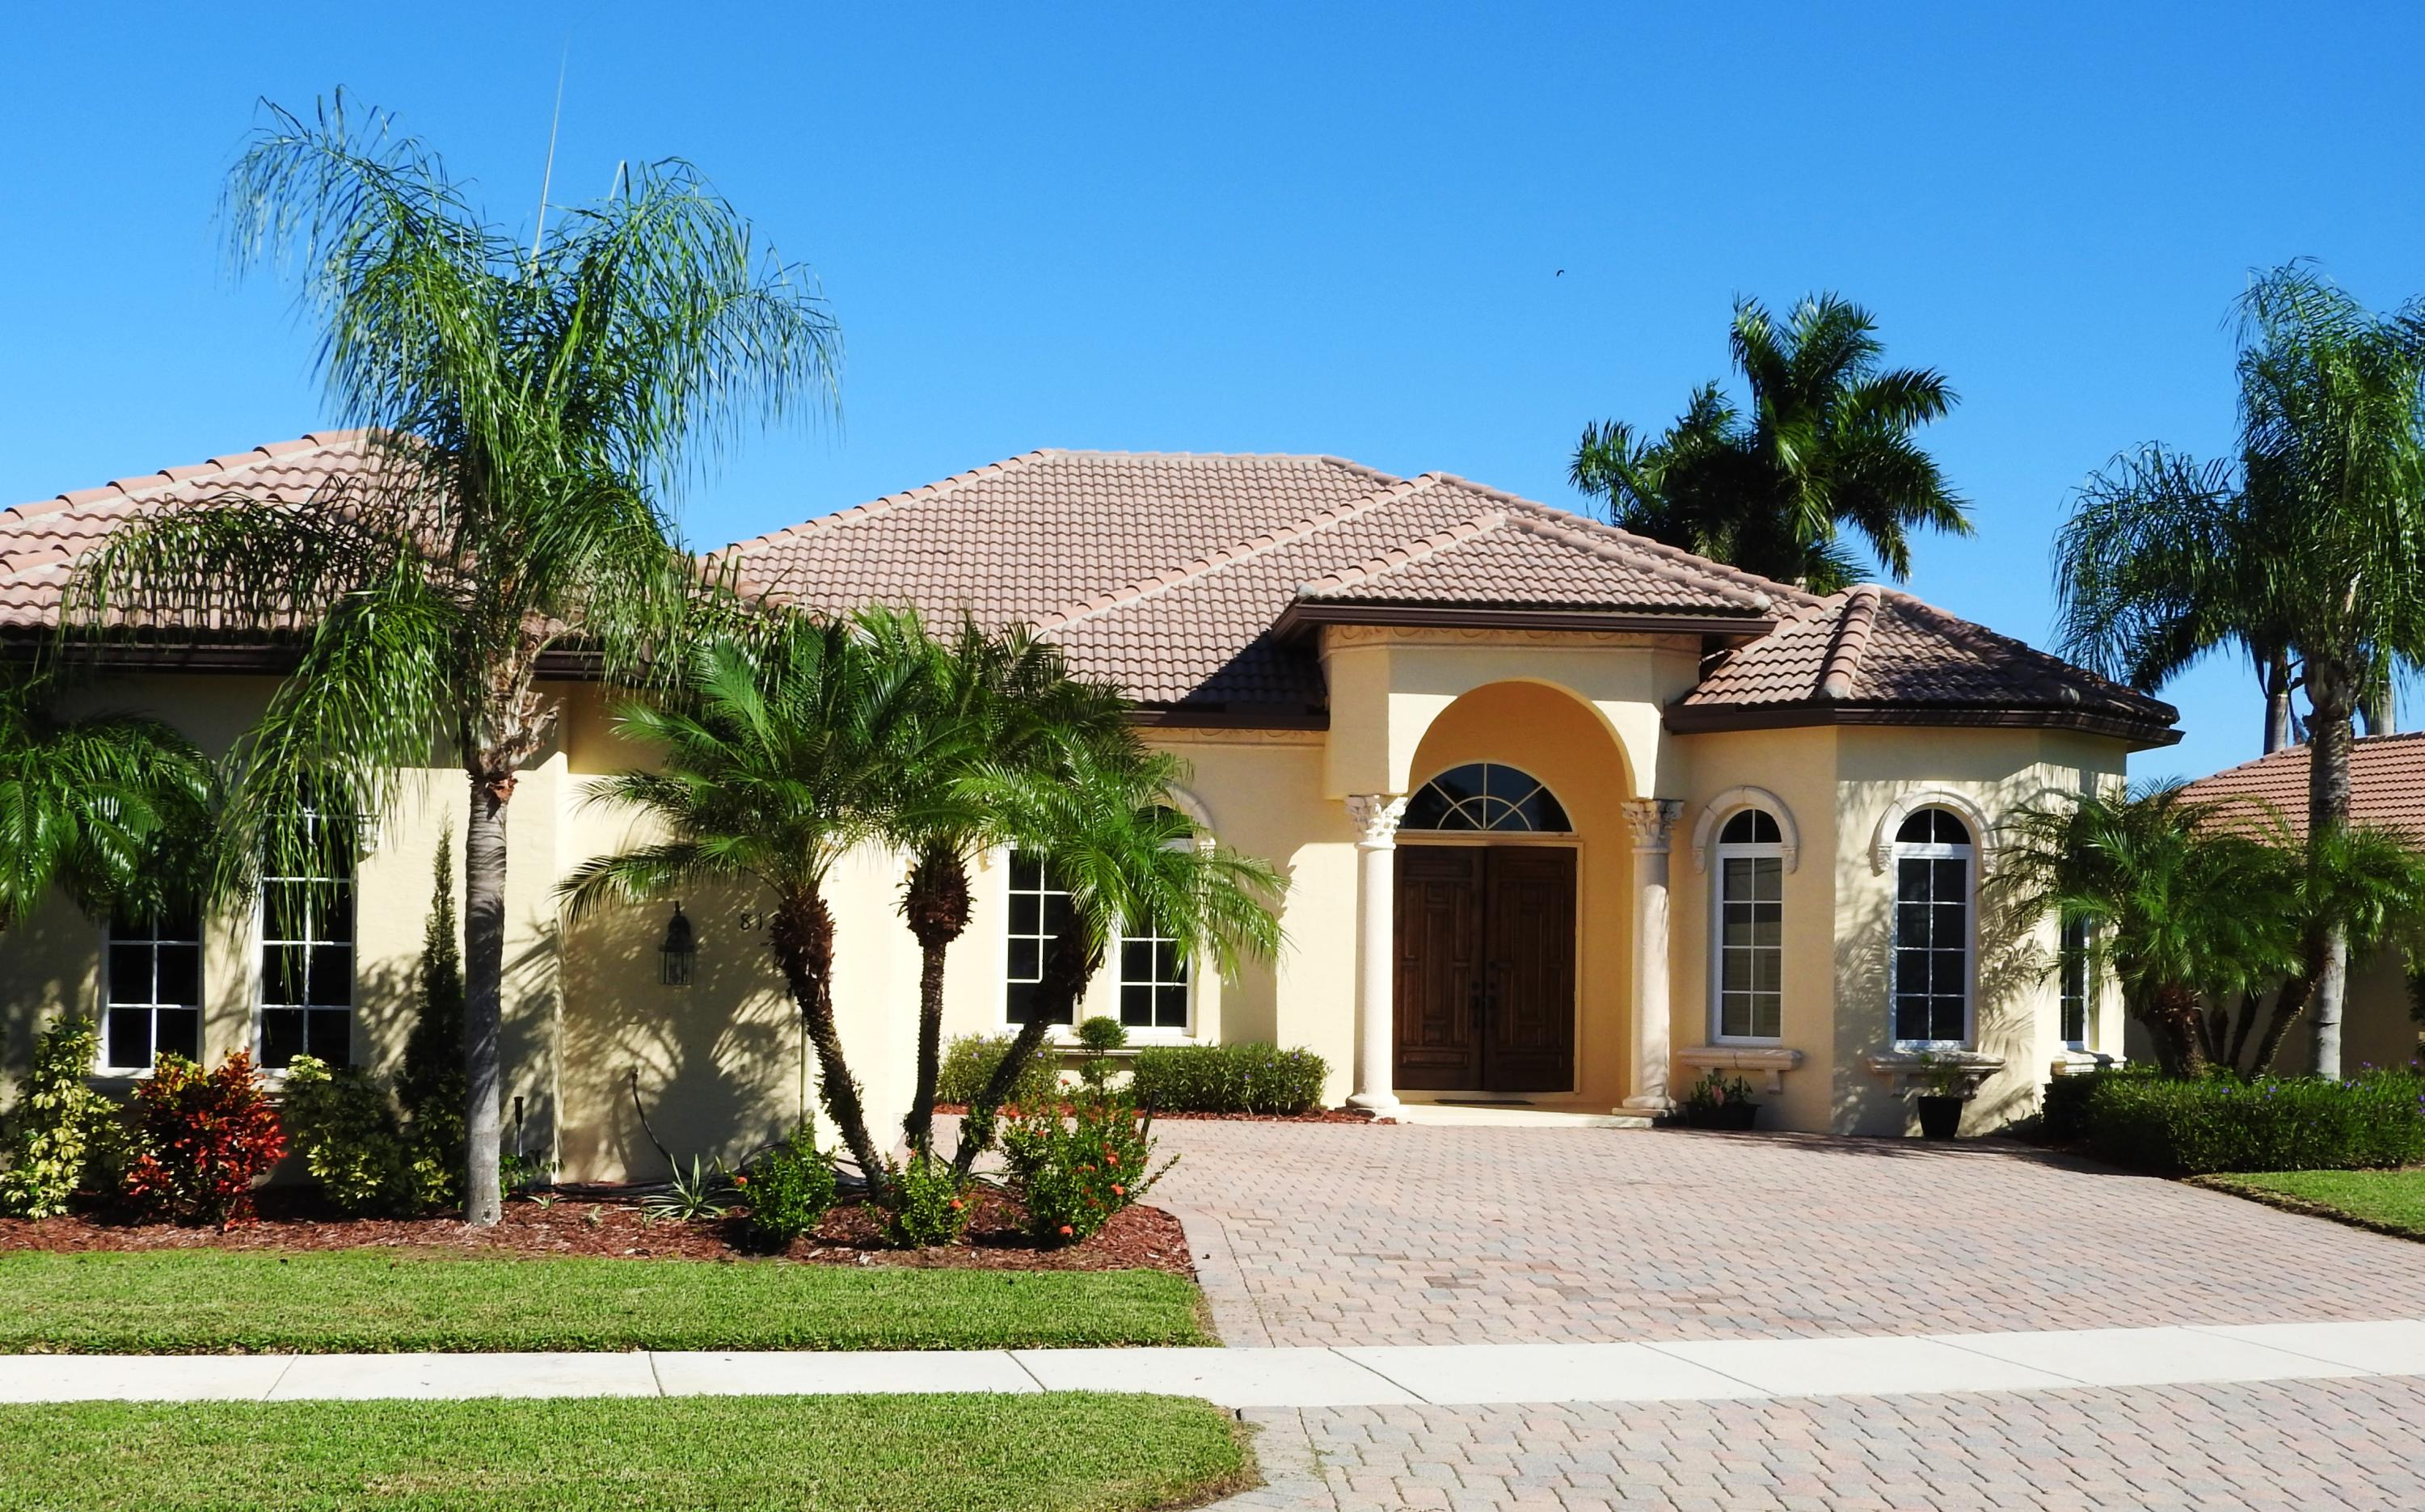 ST LUCIE WEST PLAT #130 TORTOISE CAY AT ST LUCIE WEST PHASE 1 LOT 87 (OR 3736-2270)